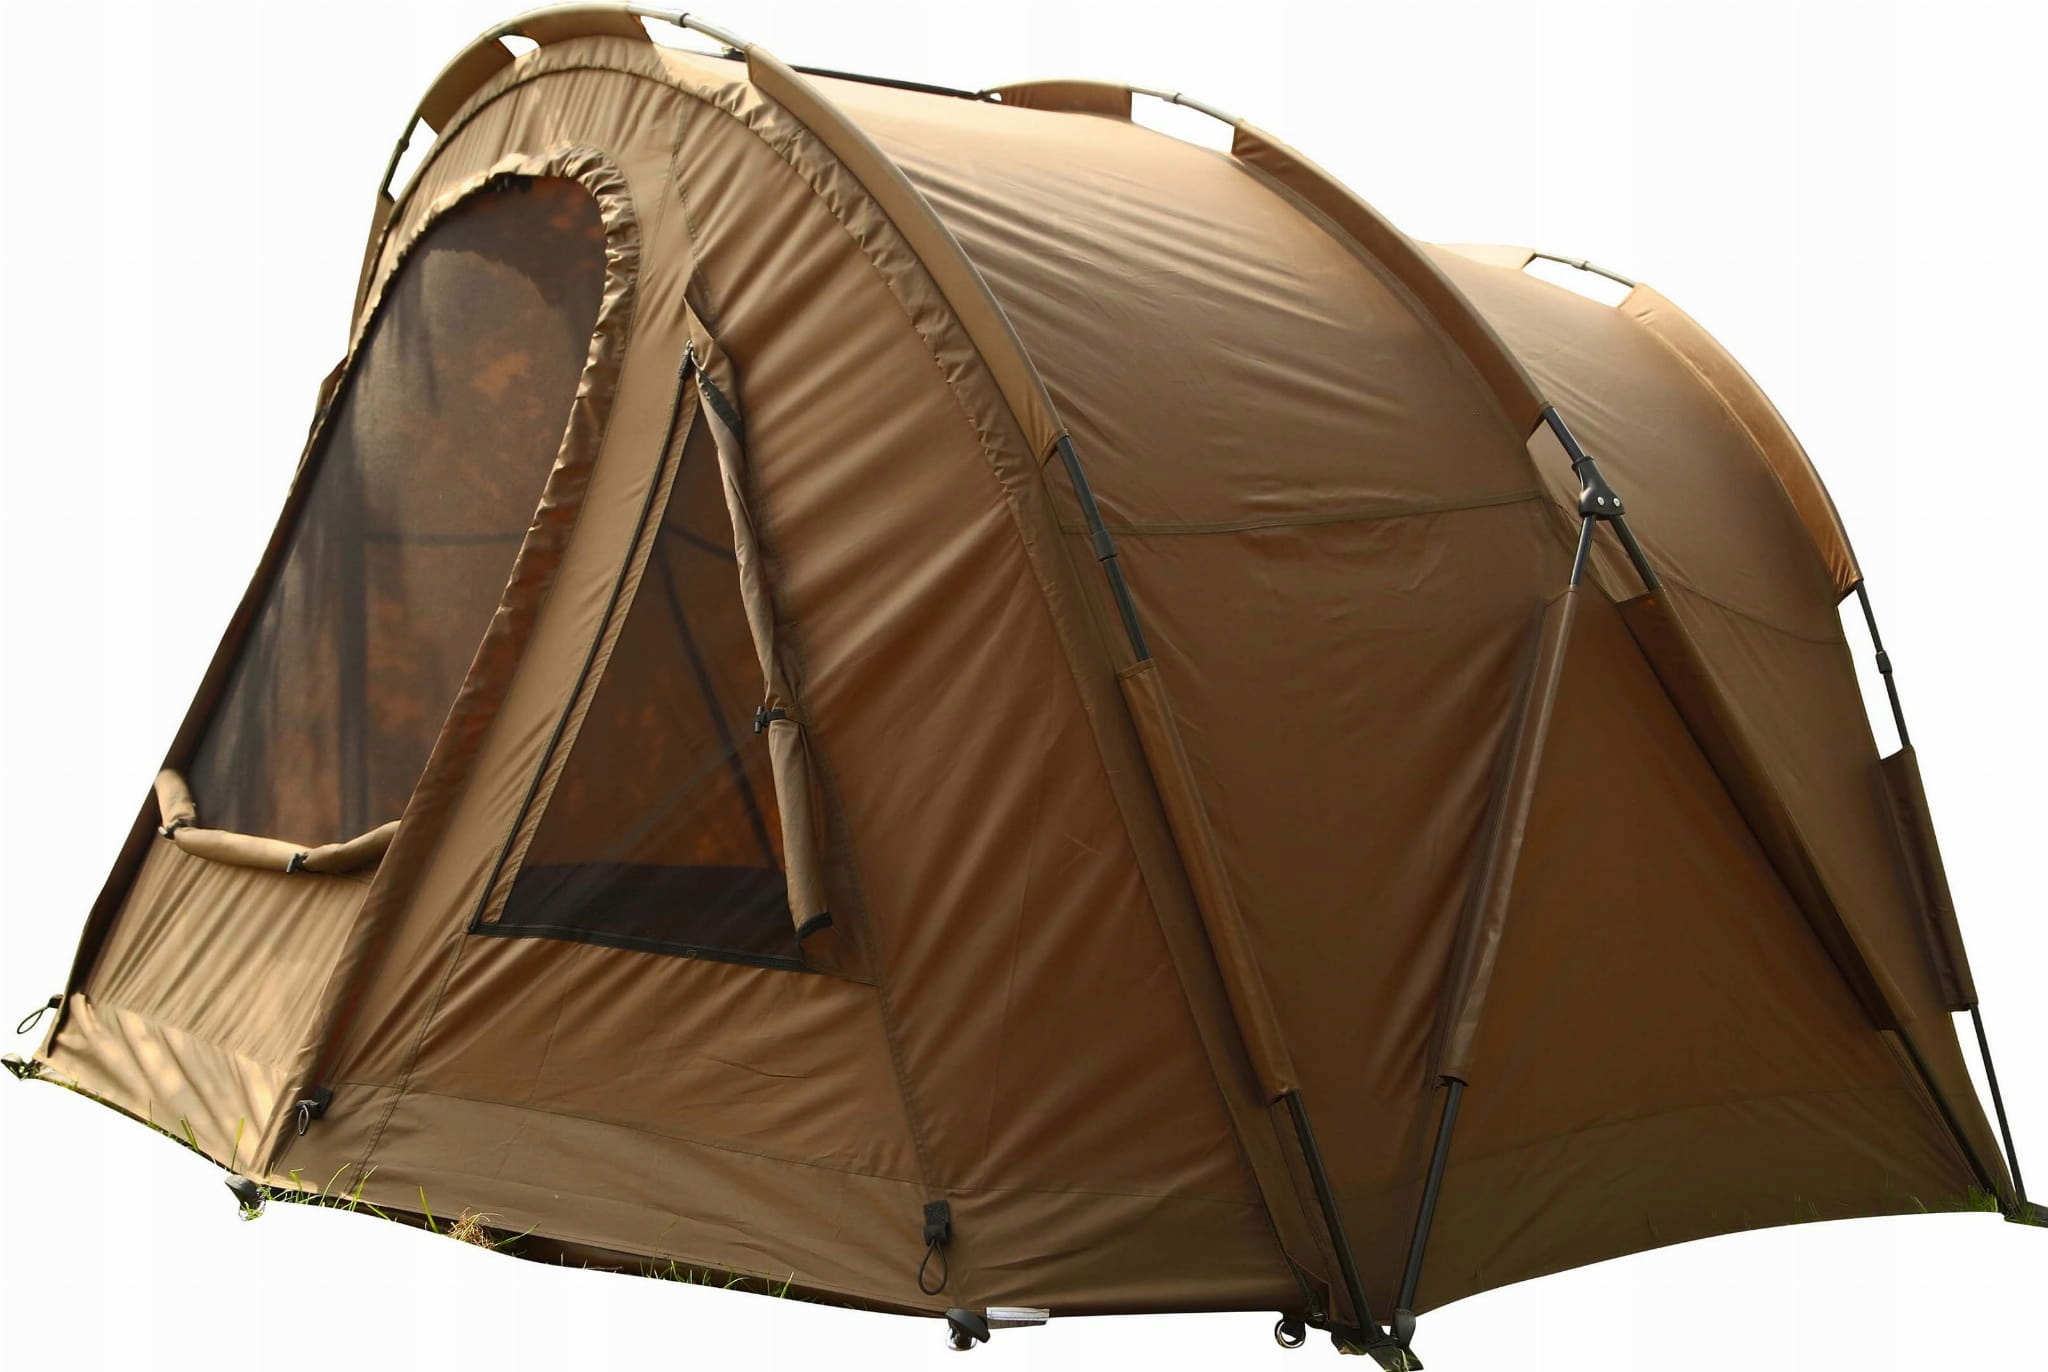 Duży namiot Prologic Commander VX2 Bivy 2 Man HIT